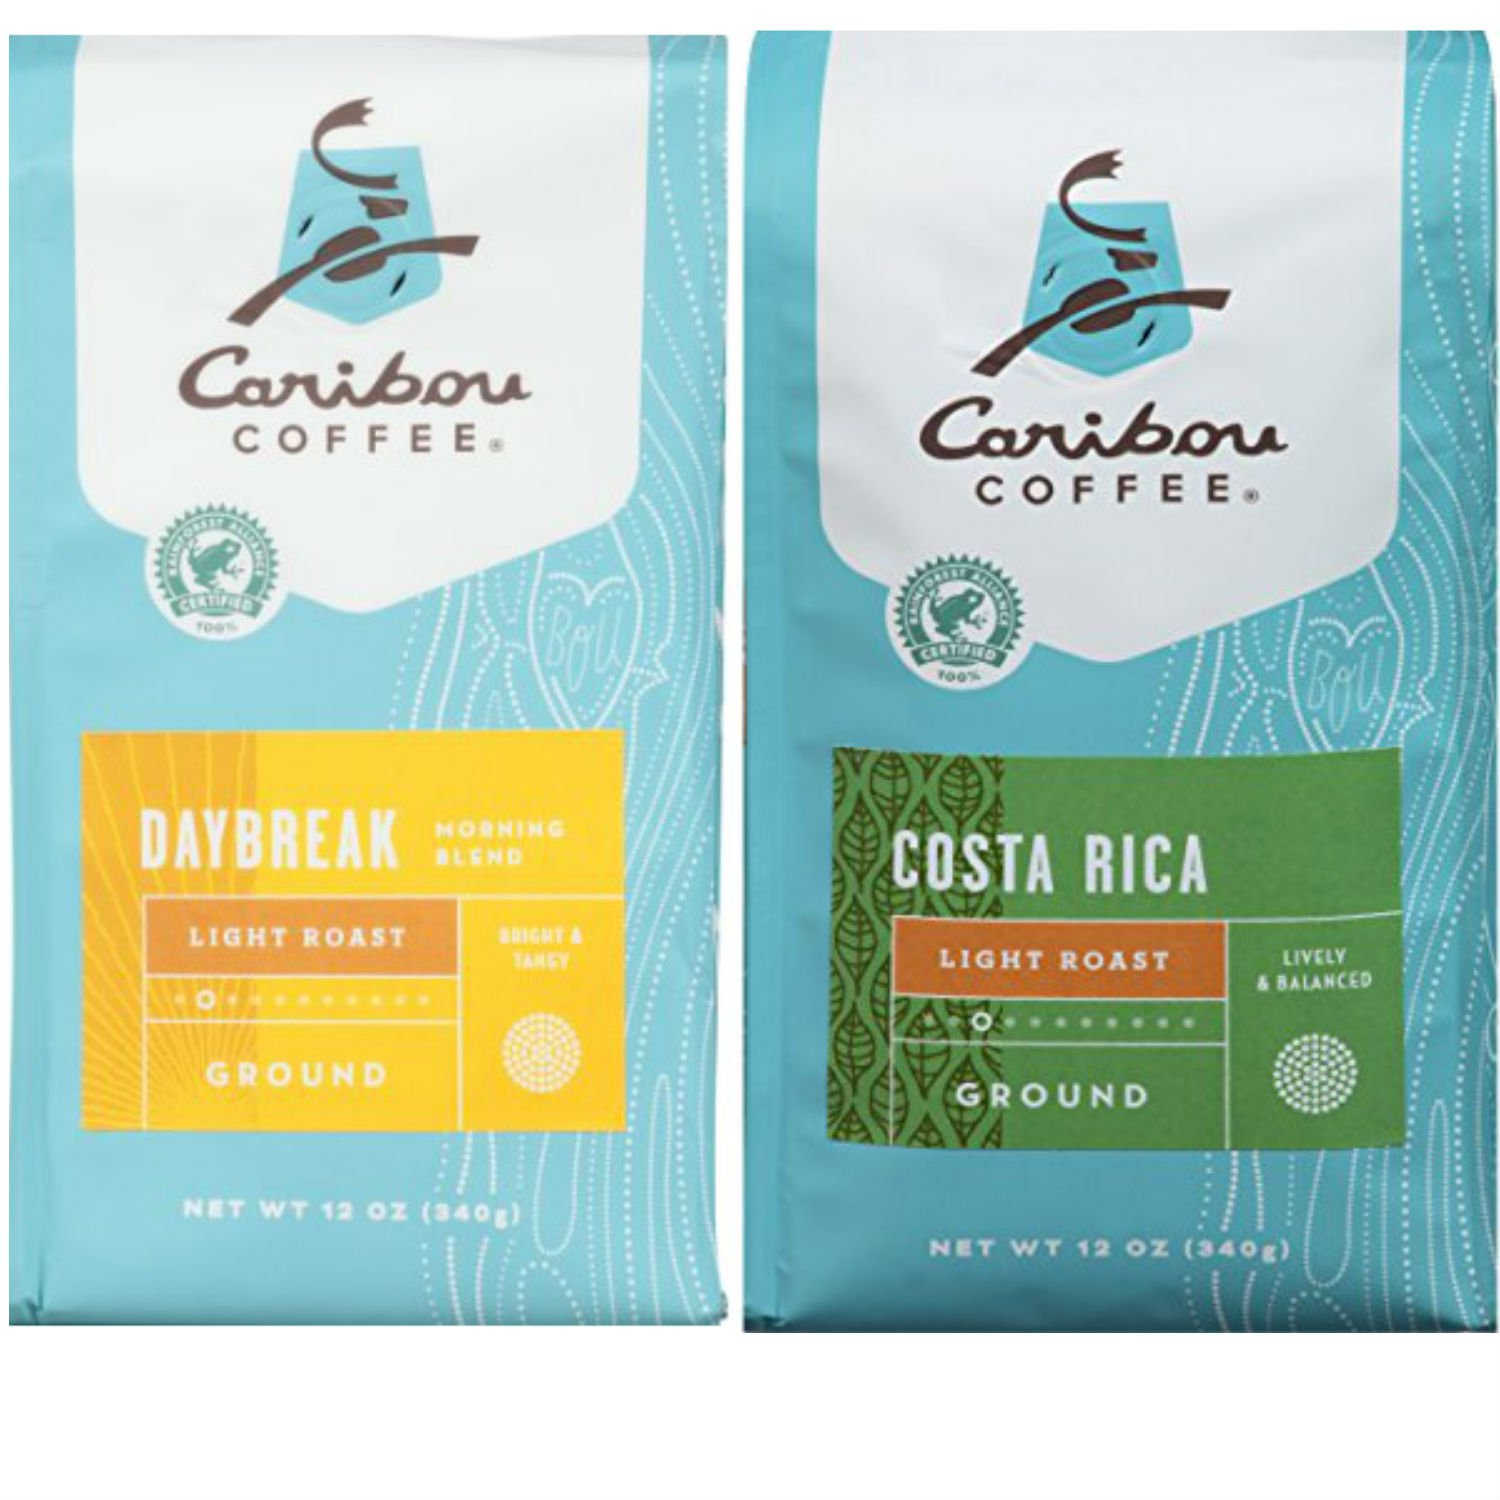 Caribou Light Ground Daybreak Coffee and Costa Rica Coffee; Easy and Convenient Shopping For 2 Popular and Hard to Find Caribou Coffee Varieties. Perfectly Delicious Choice for Office, Home or Dorm.